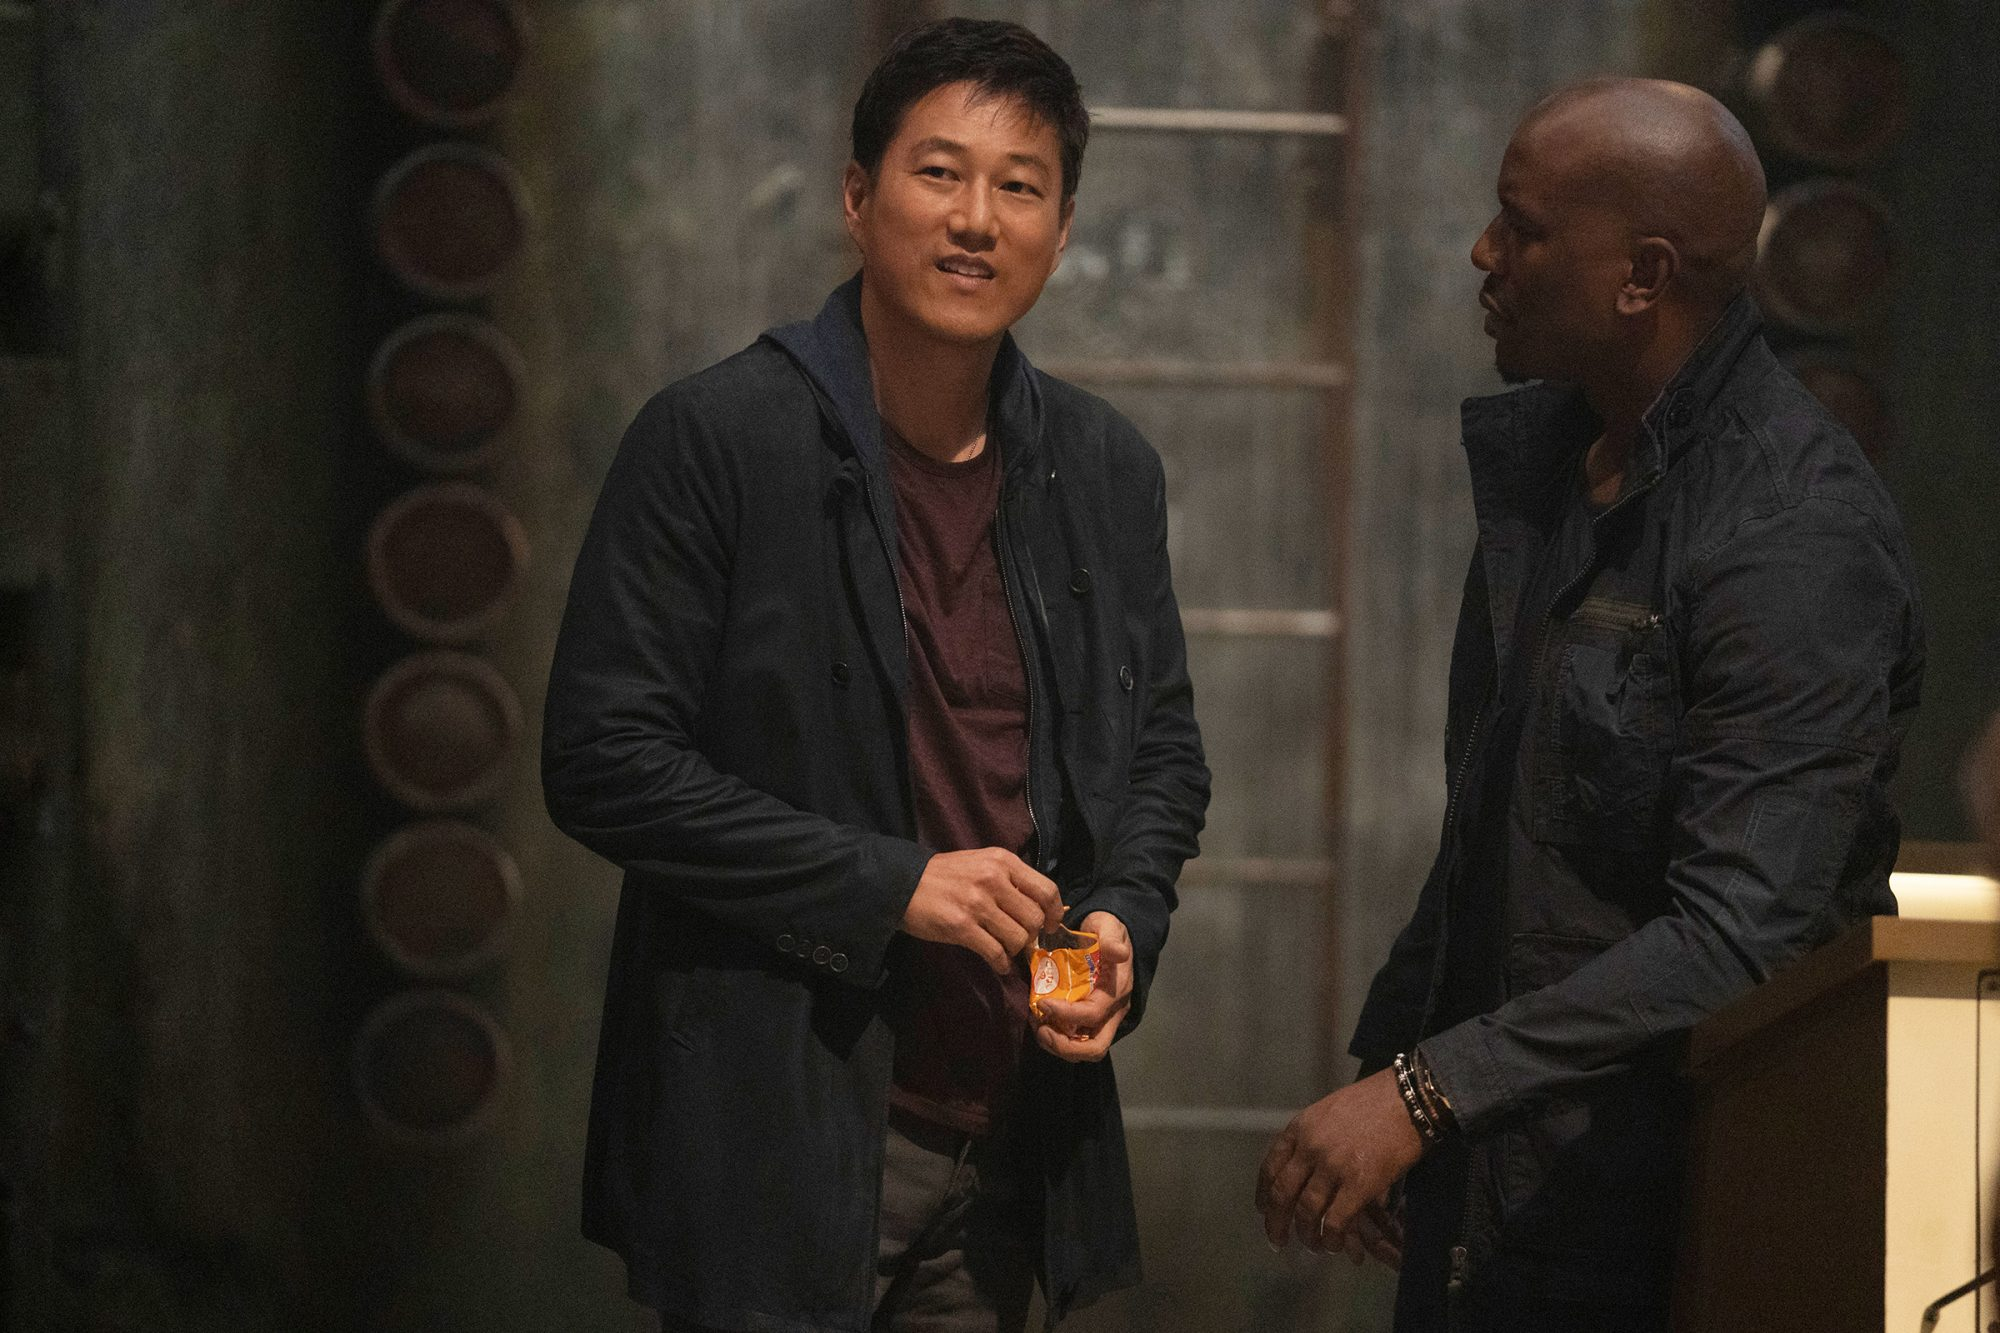 (from left) Han (Sung Kang) and Roman (Tyrese Gibson) in F9, directed by Justin Lin.